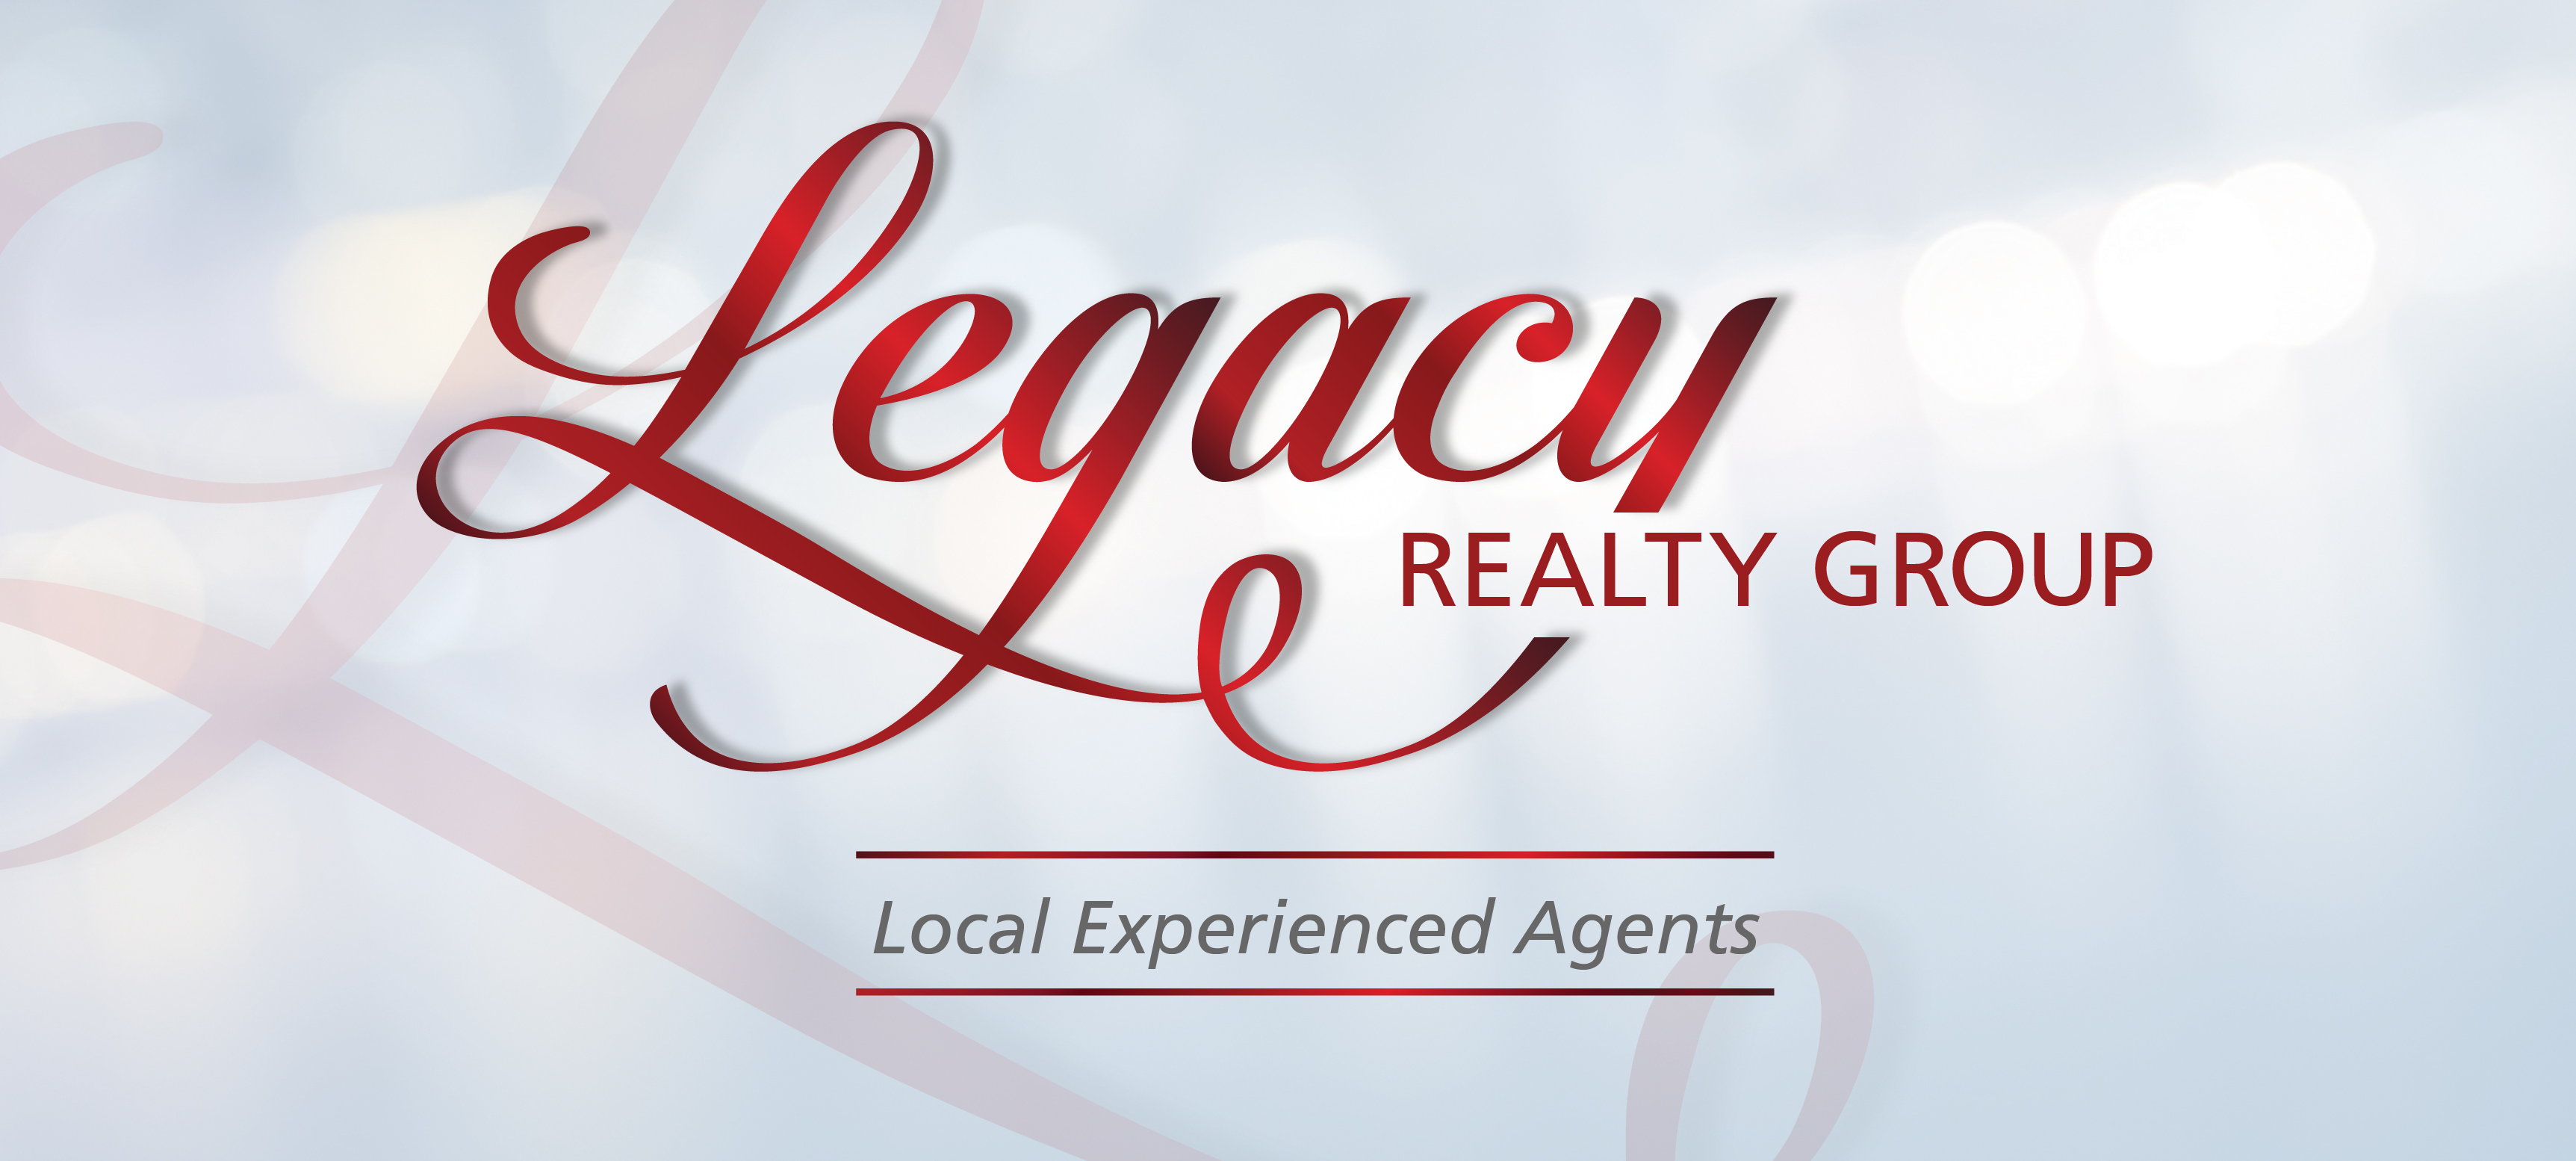 Legacy Realty Group reviews | 130 Chieftain Dr - Waxahachie TX